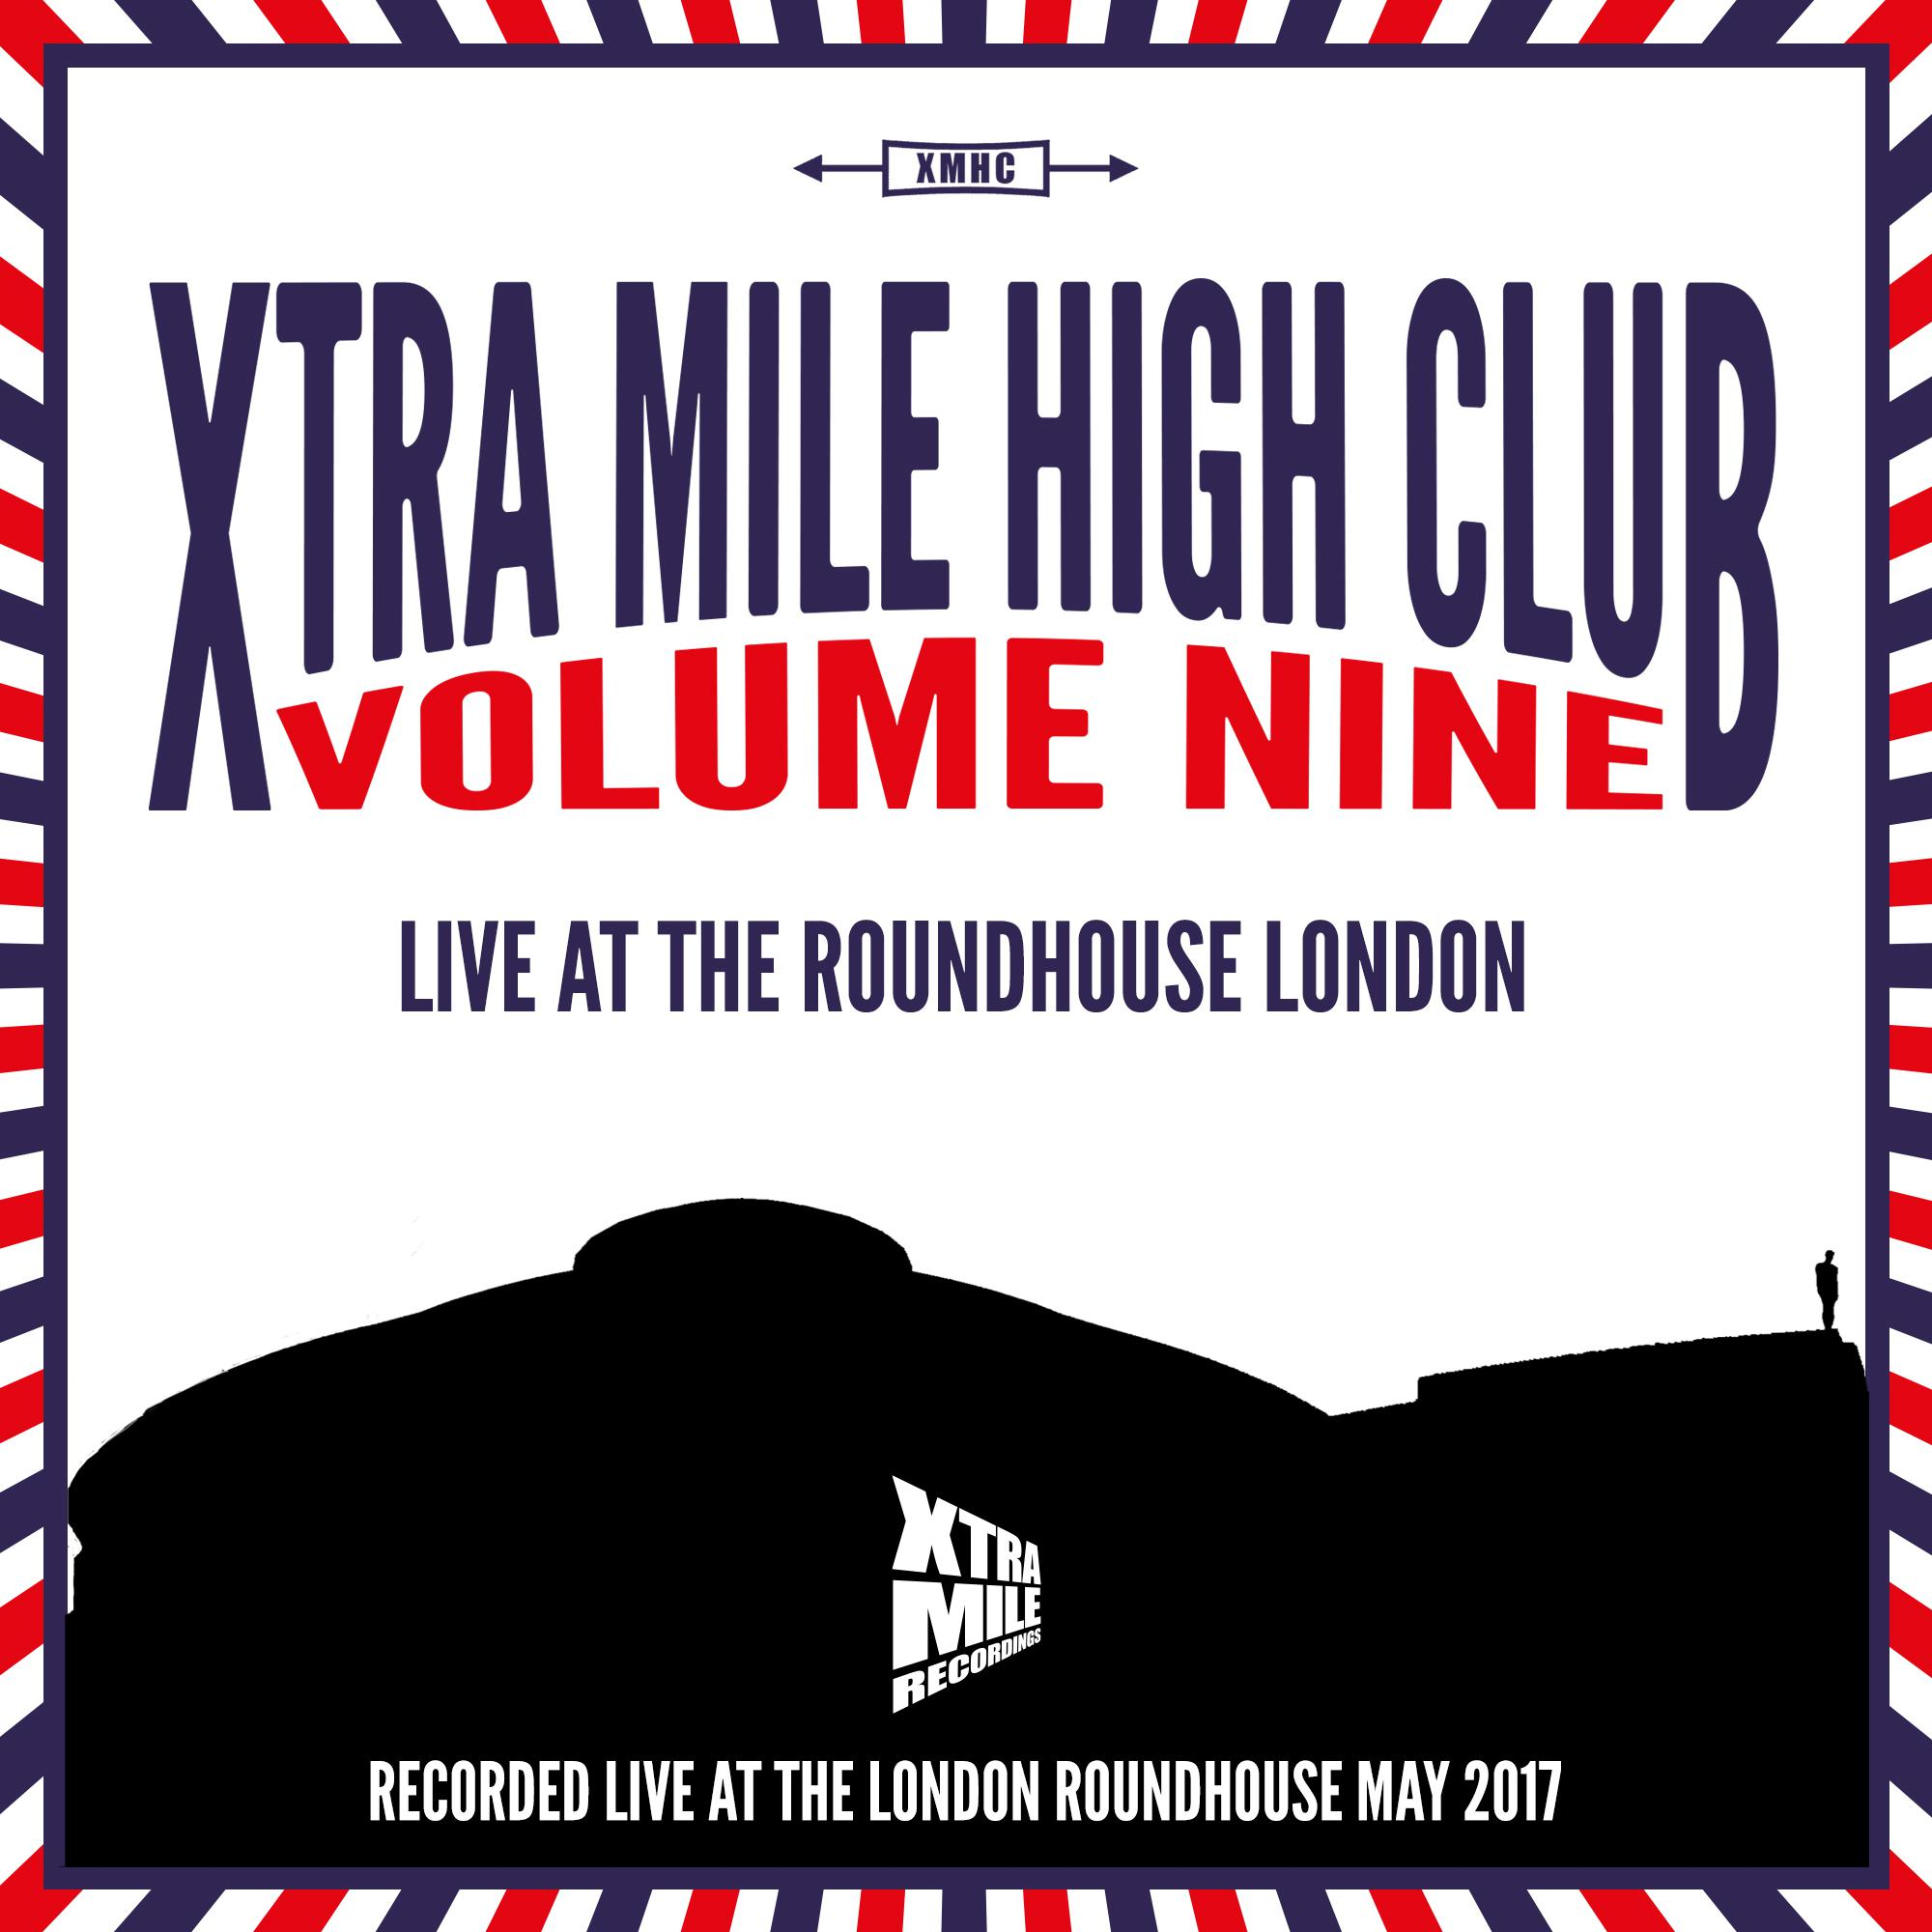 XMHC Vol 9 Live at the Roundhouse.jpg